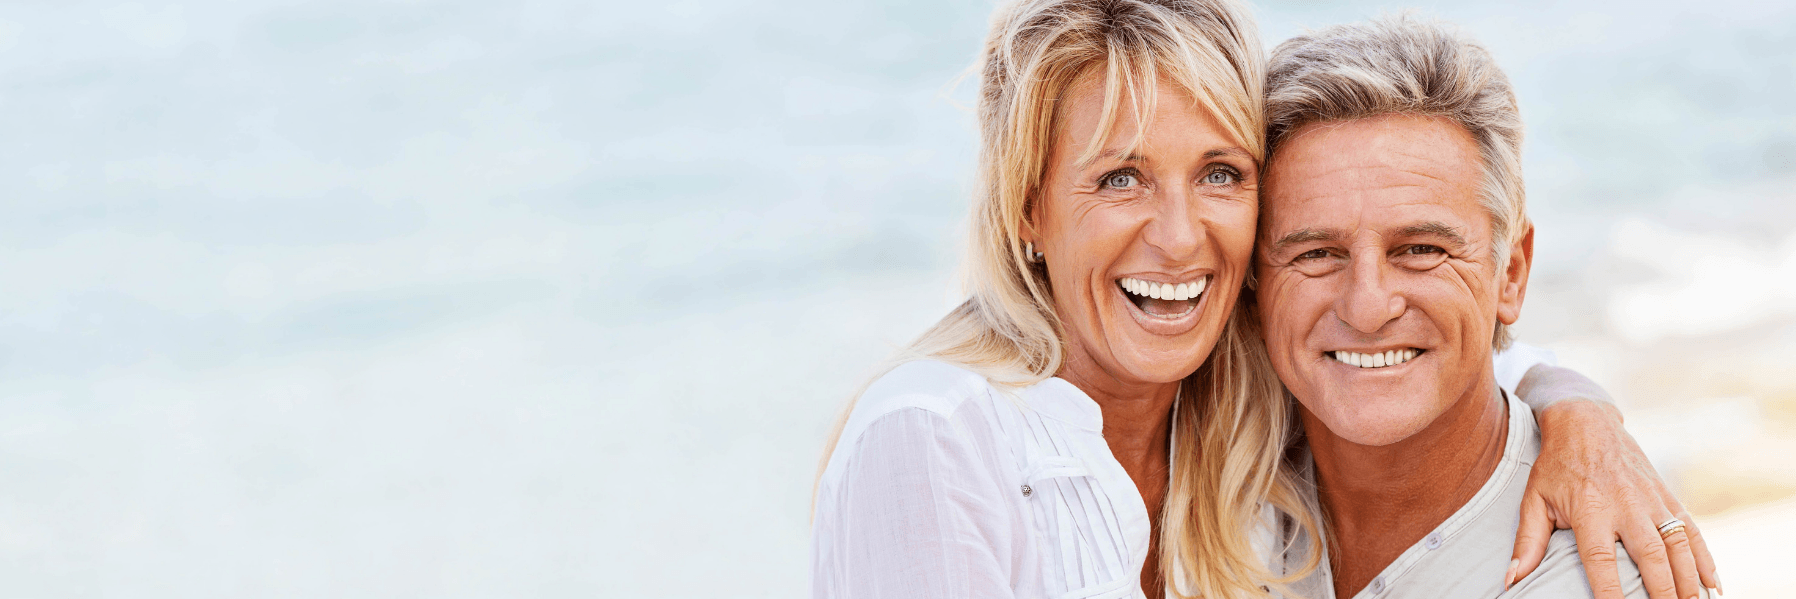 Older couple smiling on a beach l Dental Bridges Doylestown Dental Group